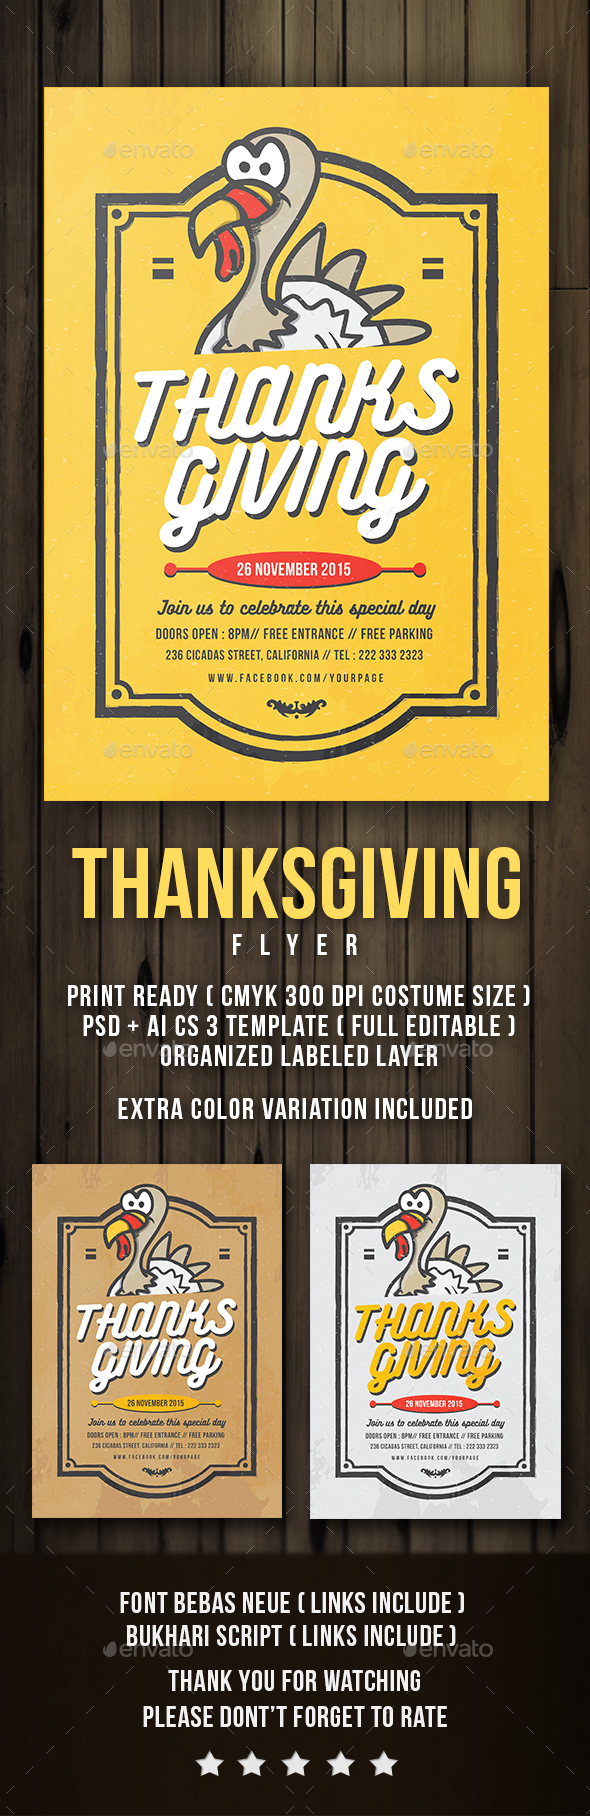 Flyer Thanksgiving Thanksgiving Flyer Template And Font Logo